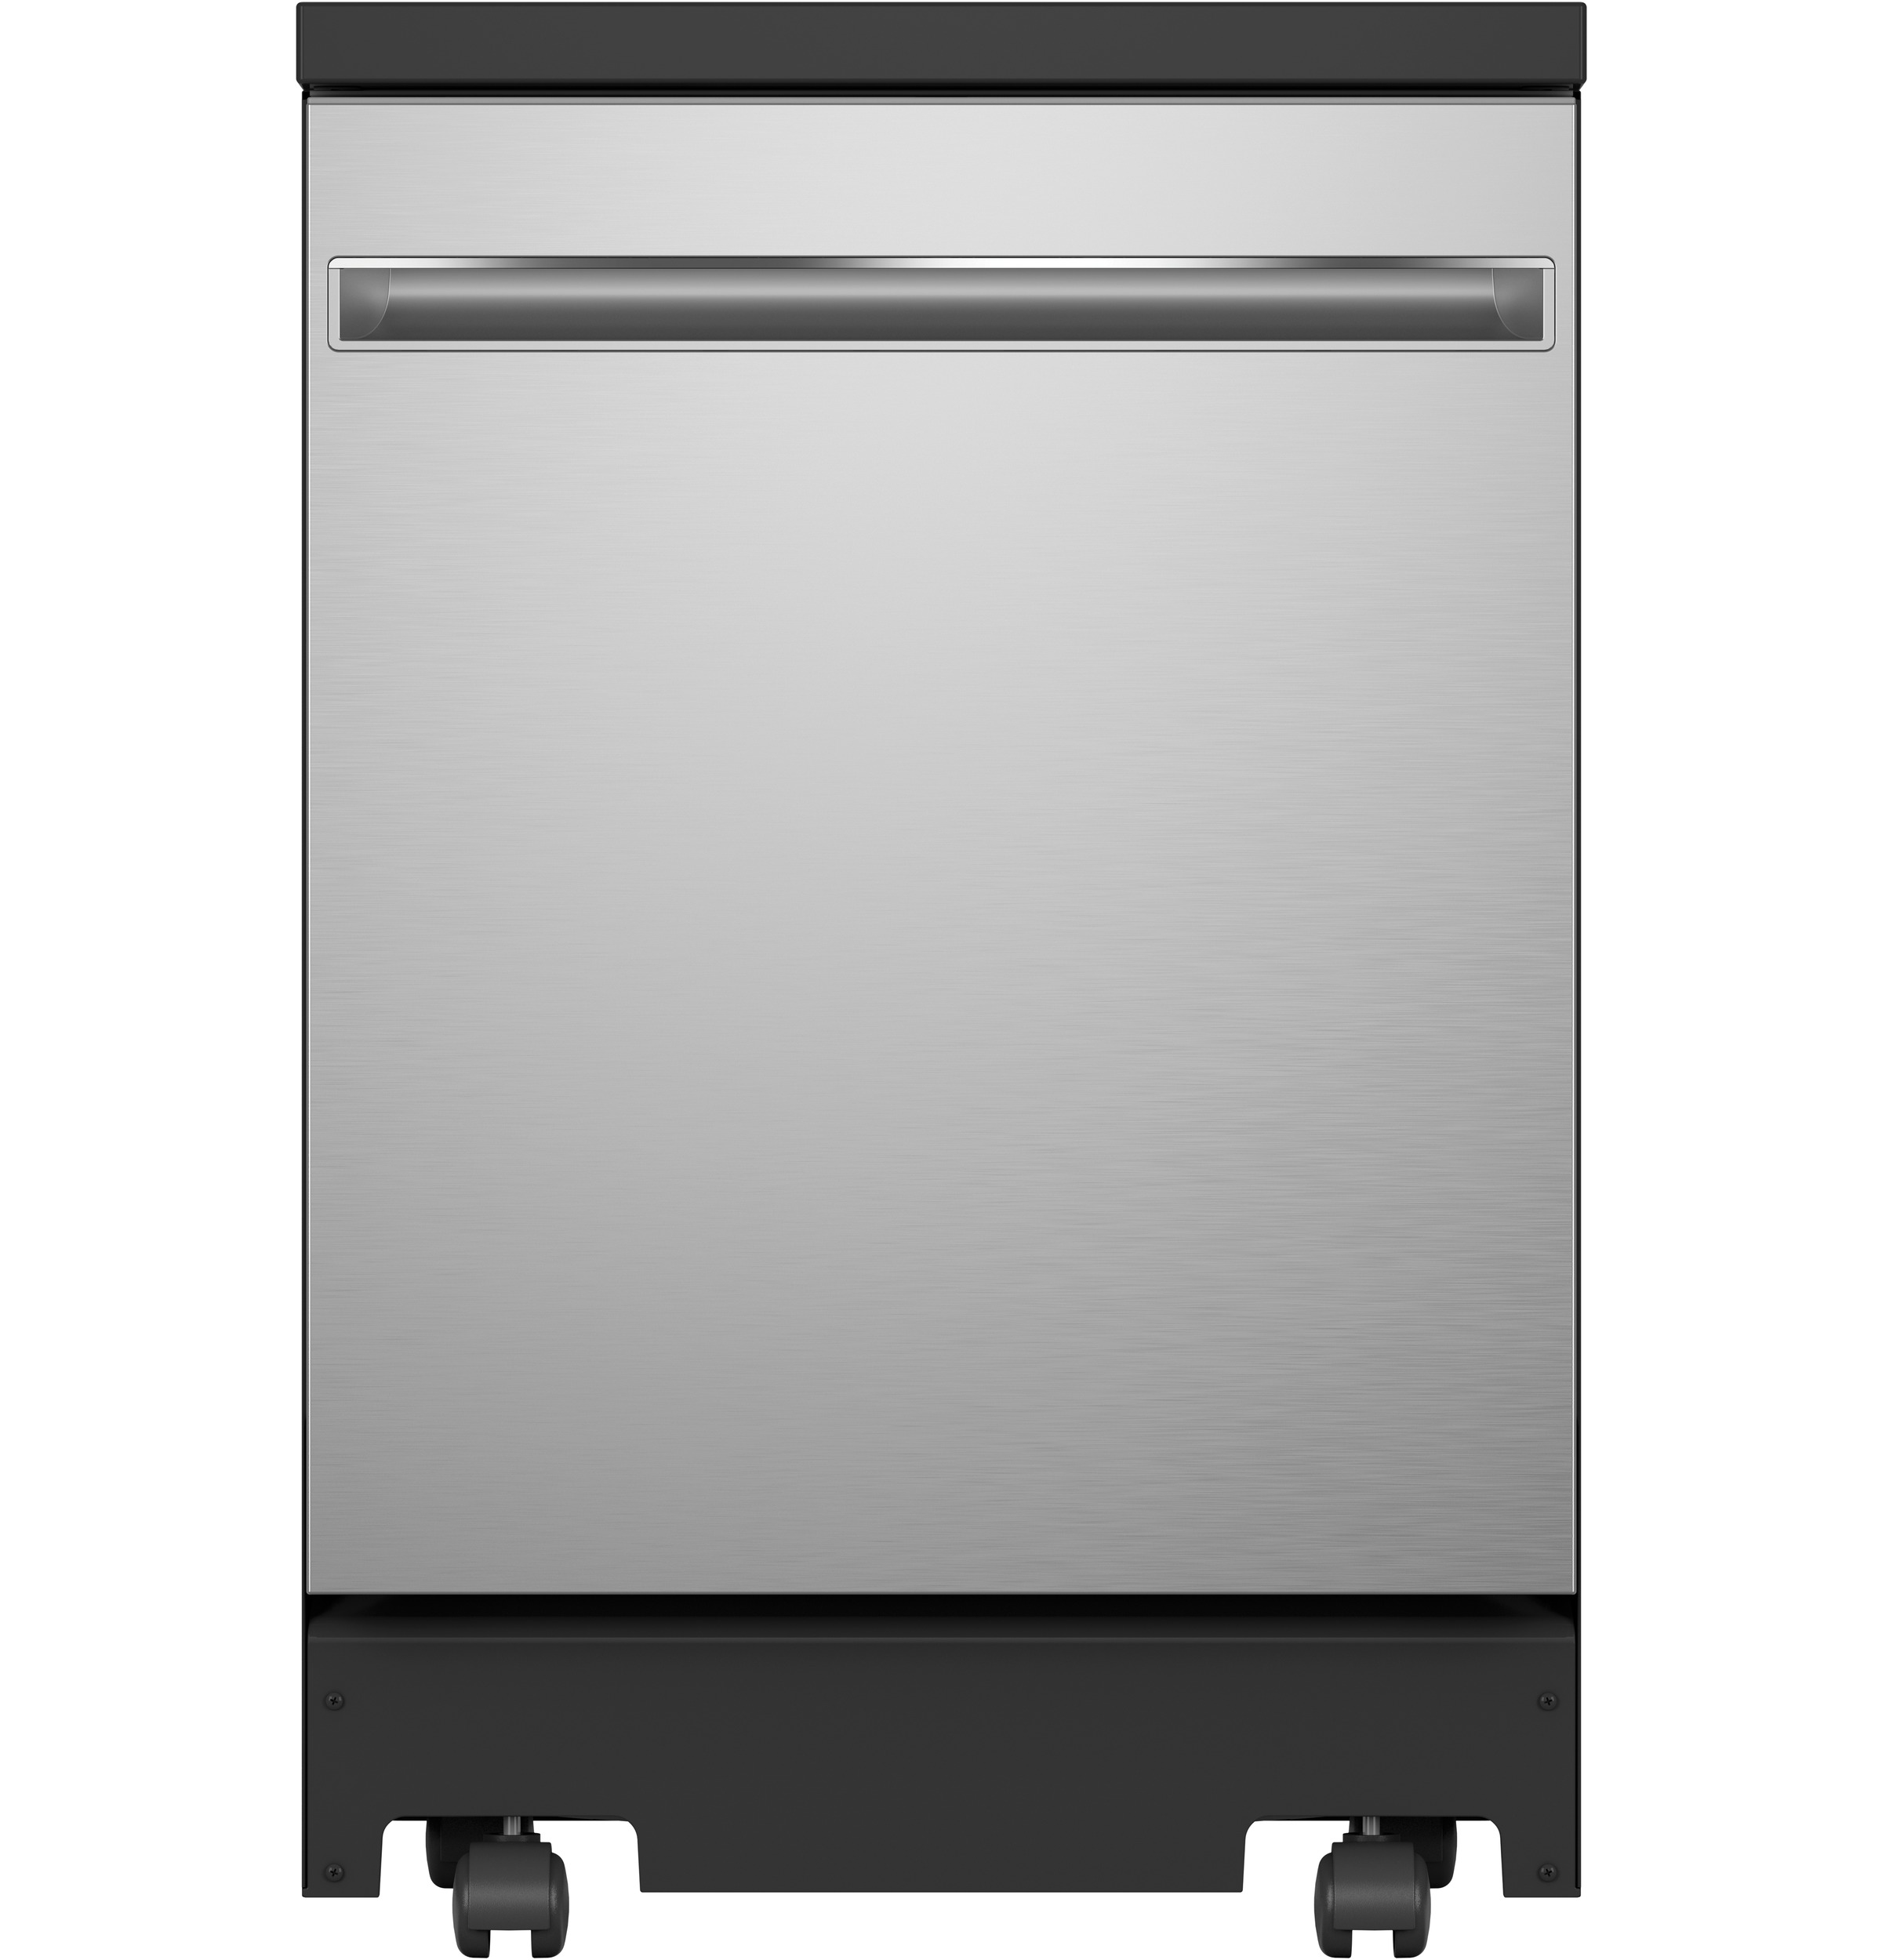 "Model: GPT225SSLSS | GE GE® 24"" Stainless Steel Interior Portable Dishwasher with Sanitize Cycle"